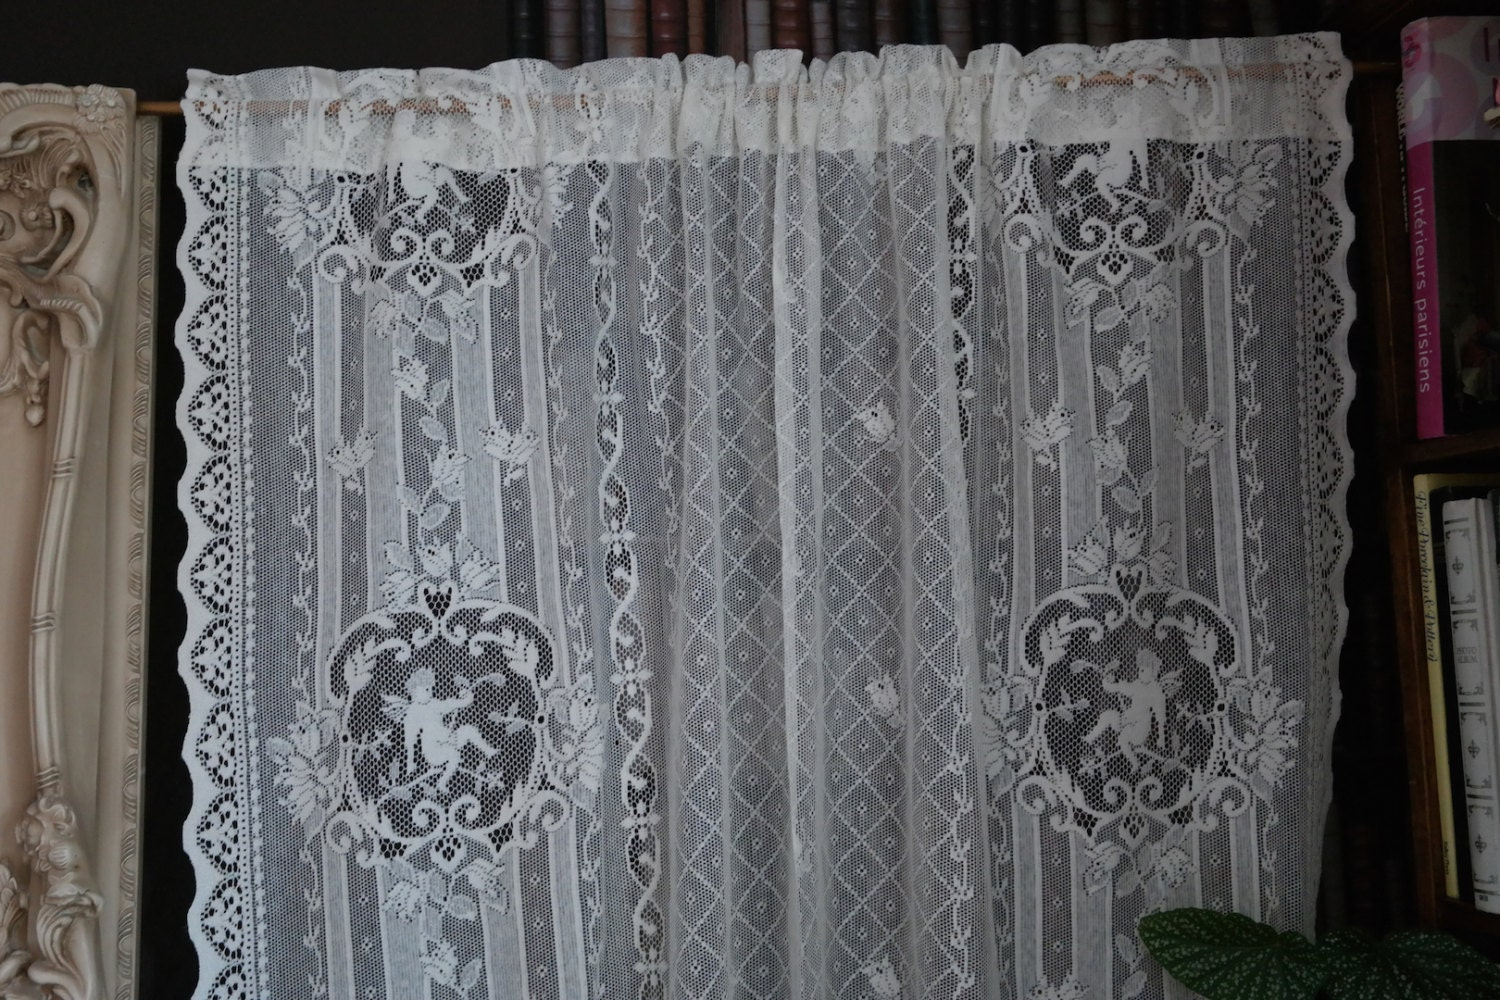 cherub angel cream cotton lace curtain antique by chateaufelicien